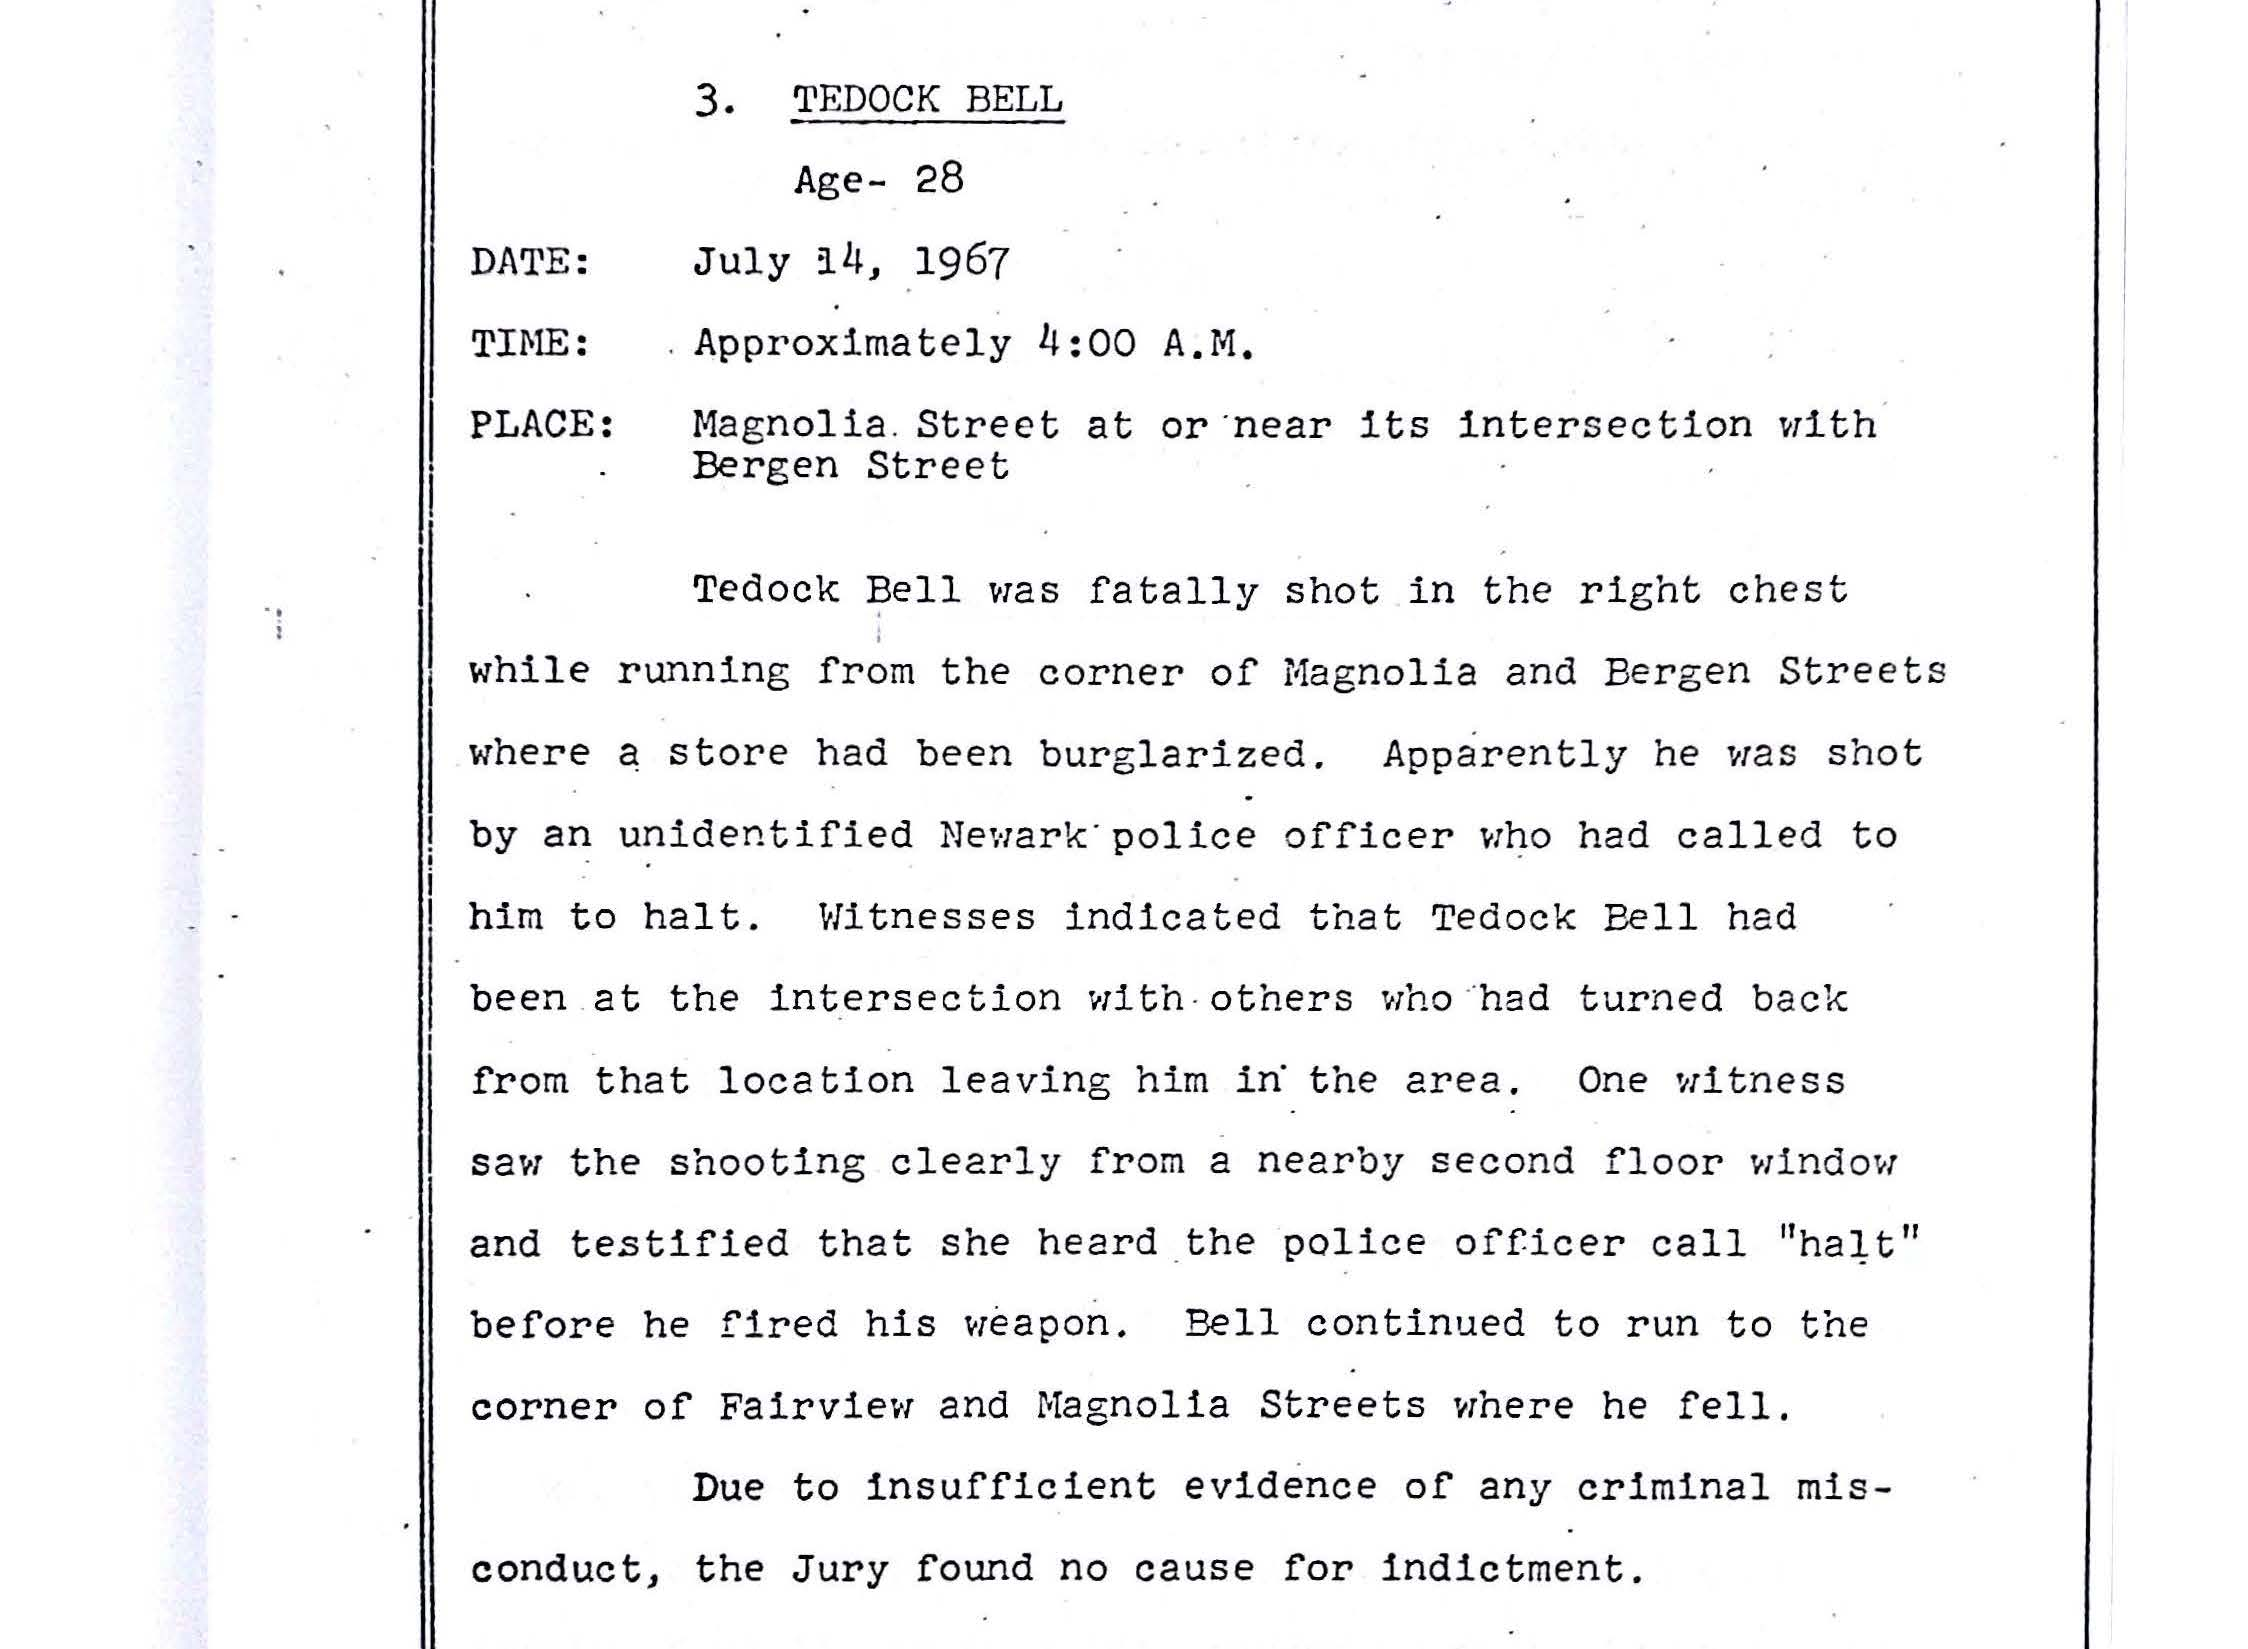 Tedock bell the north newark grand jury report describing the fatal shooting of tedock bell by newark police the grand jury found no cause for indictment newark public library aiddatafo Image collections